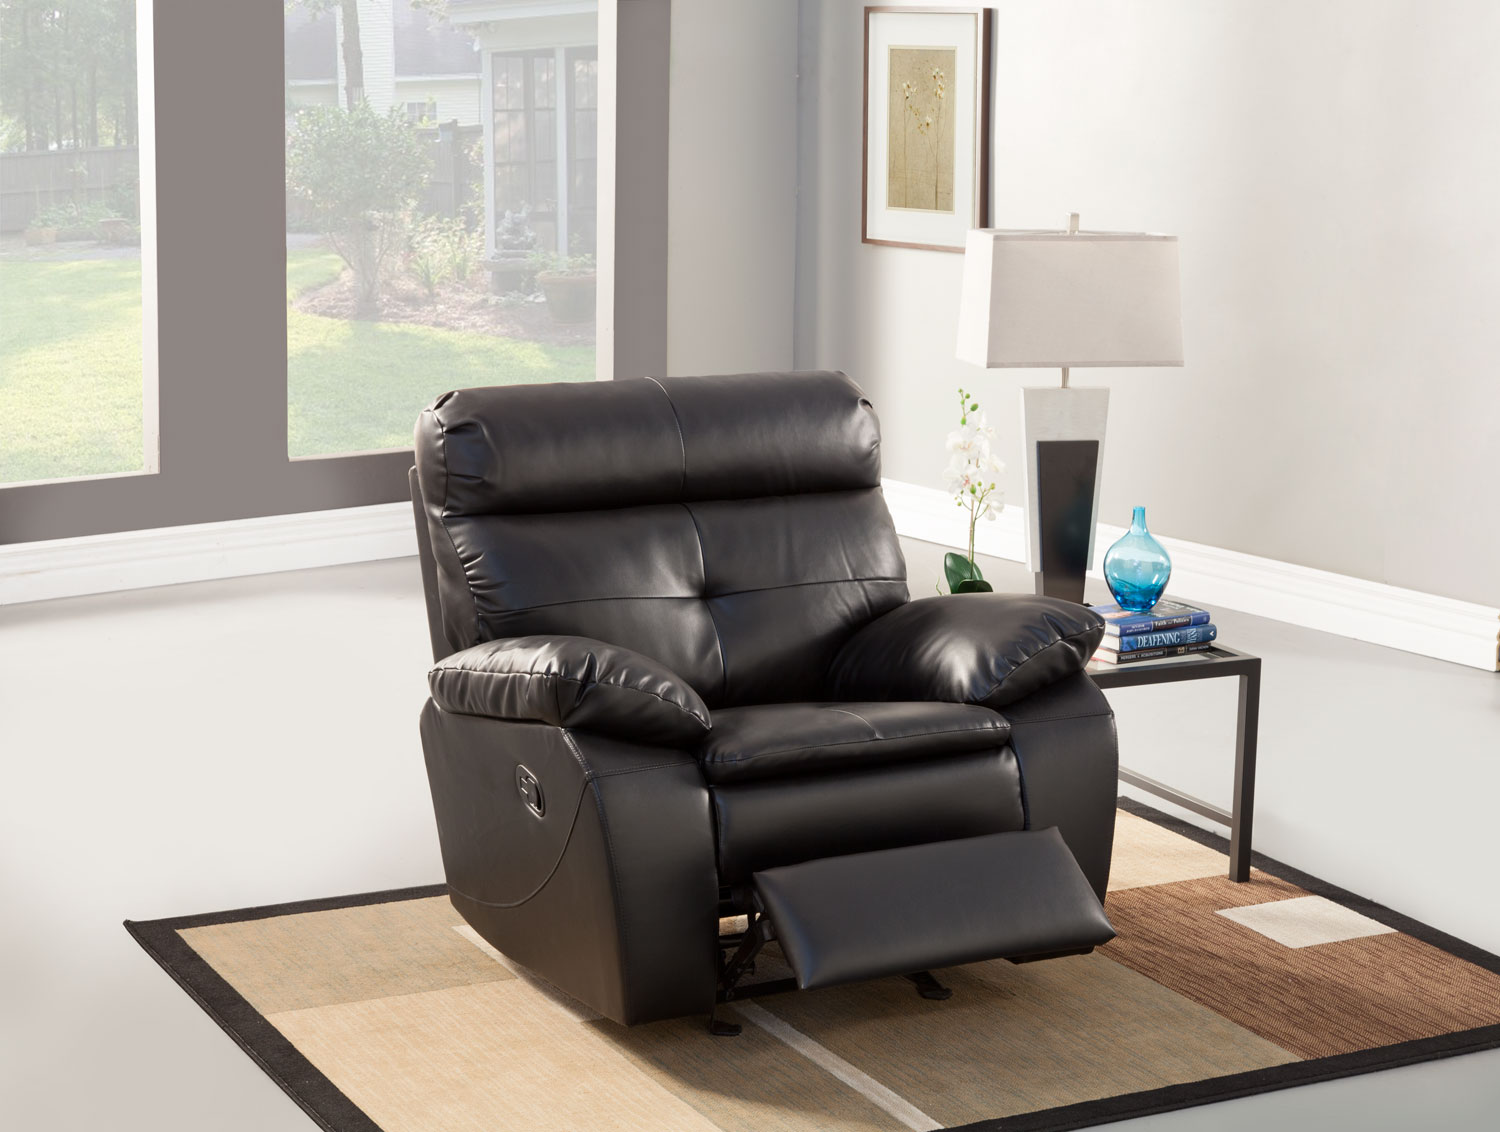 Homelegance Wallace Glider Recliner Chair - Black - Bonded Leather Match